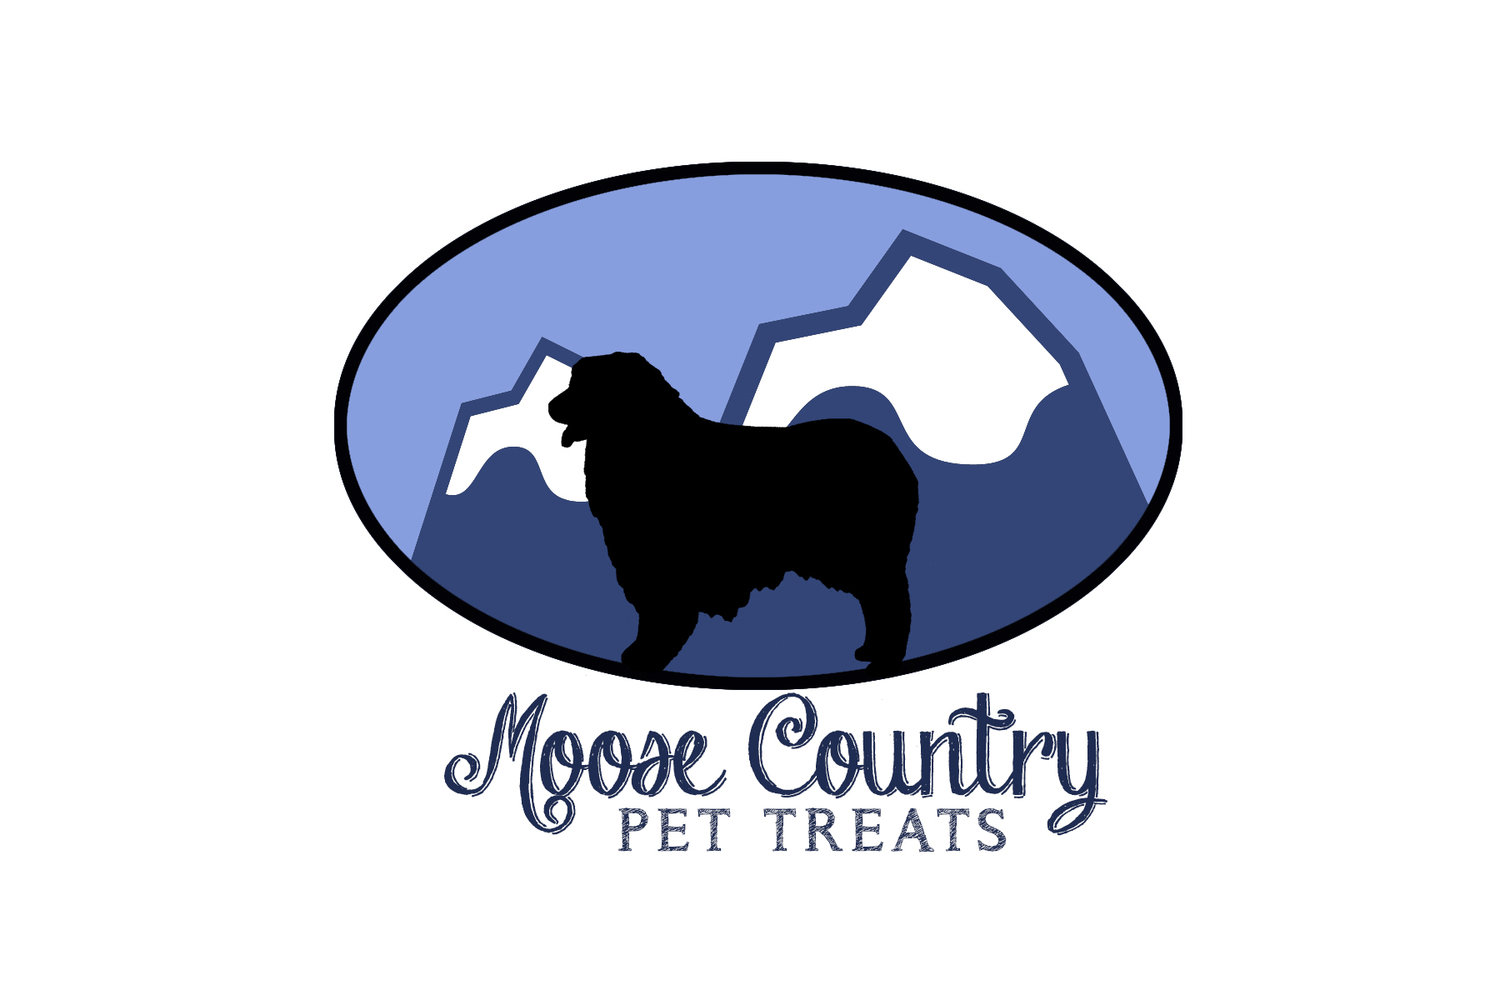 Moose Country Pet Treats